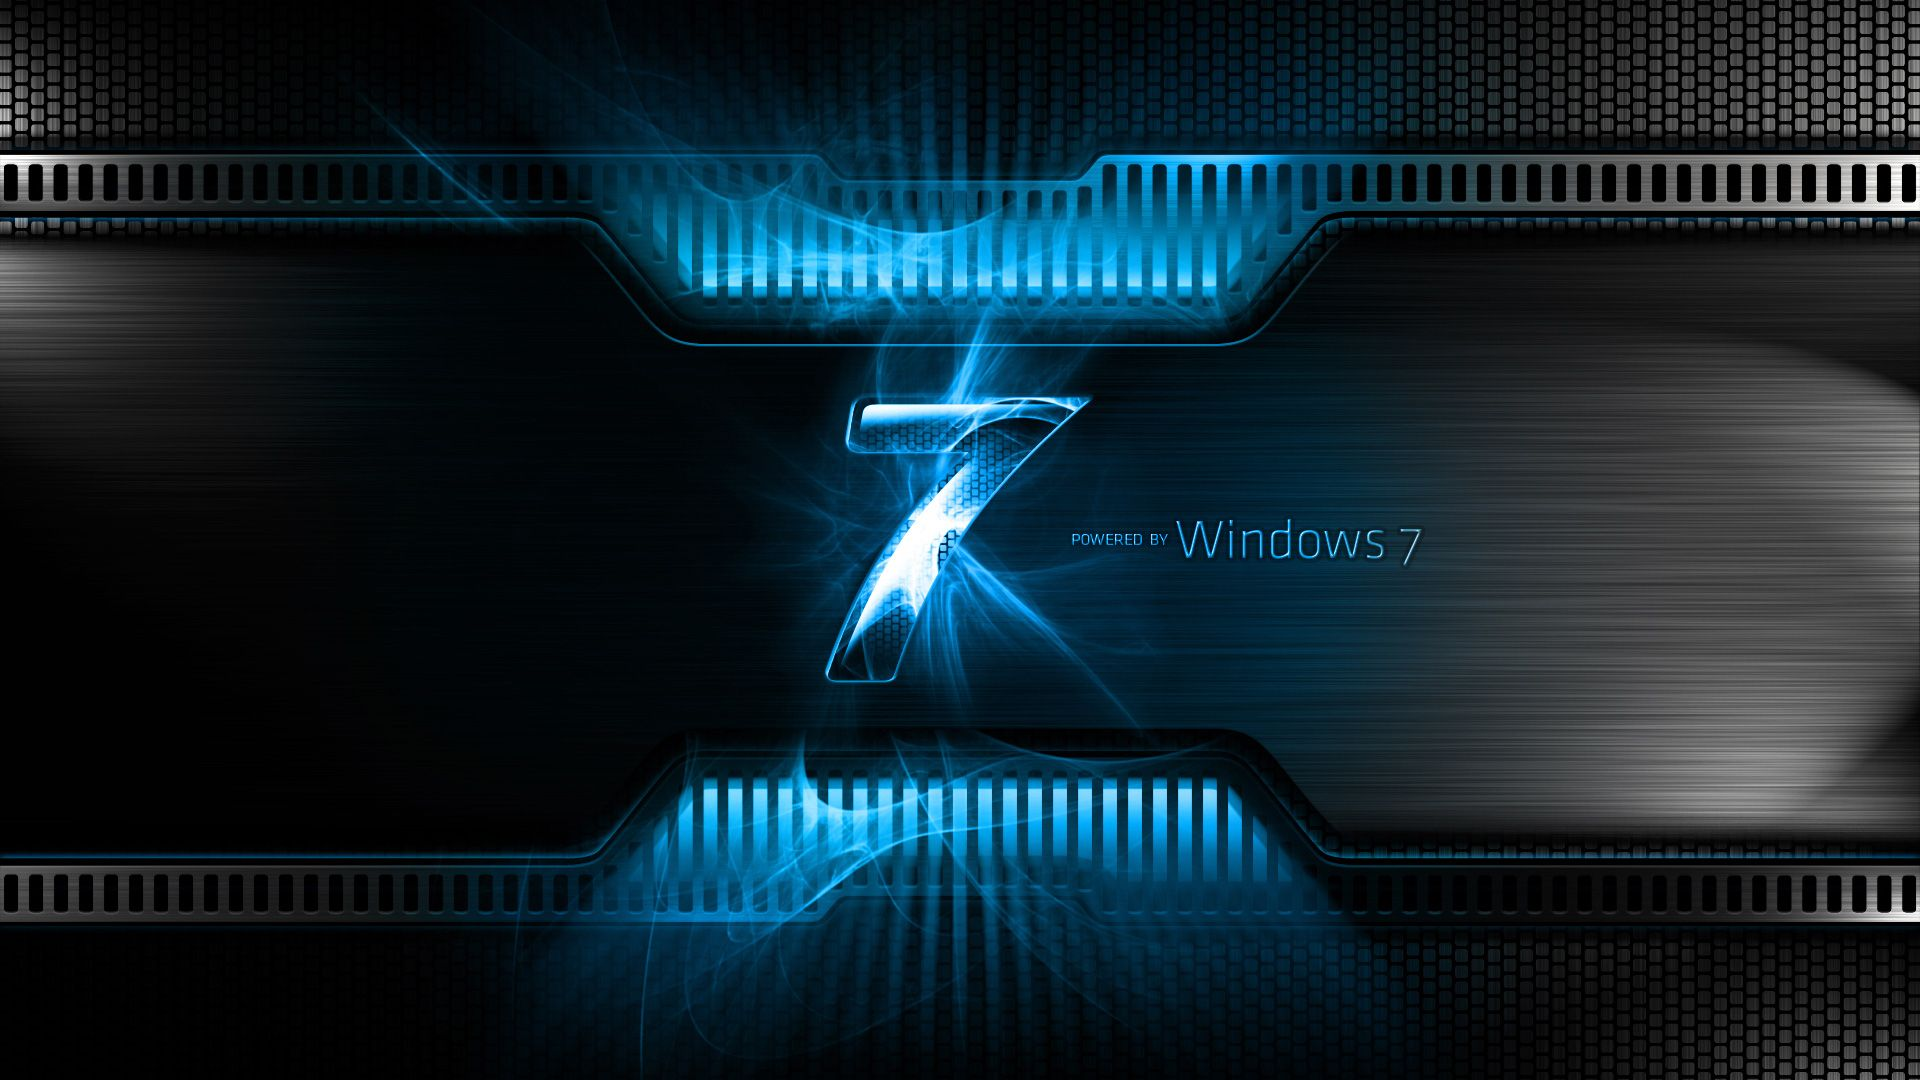 Your Win 7 Bit Tuned Technology Wallpaper Hi Tech Wallpaper Windows Wallpaper